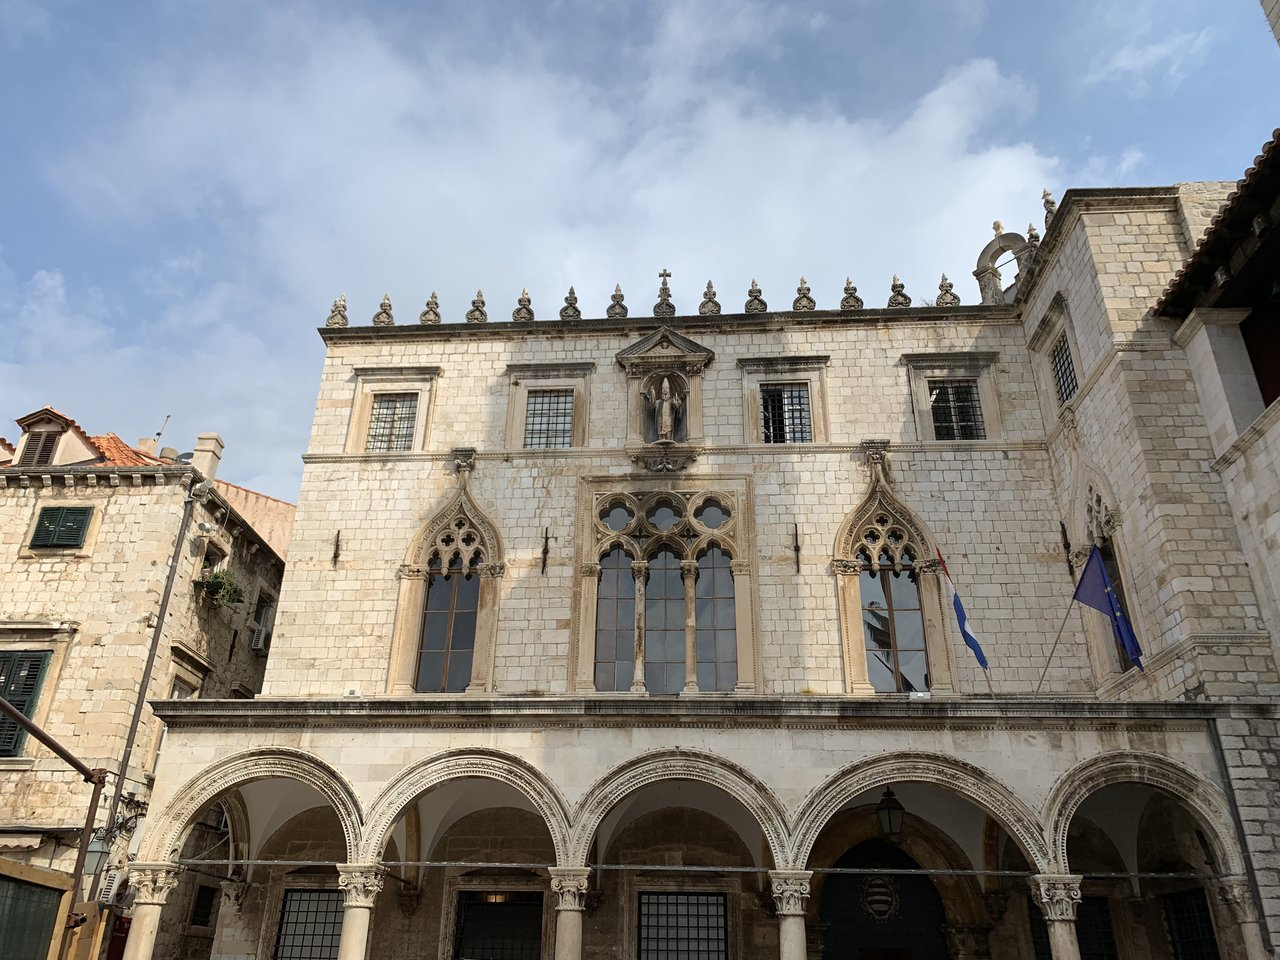 Sponza Palace: example of Venetian influence on the architecture of Dubrovnik | Photo taken by Eva W